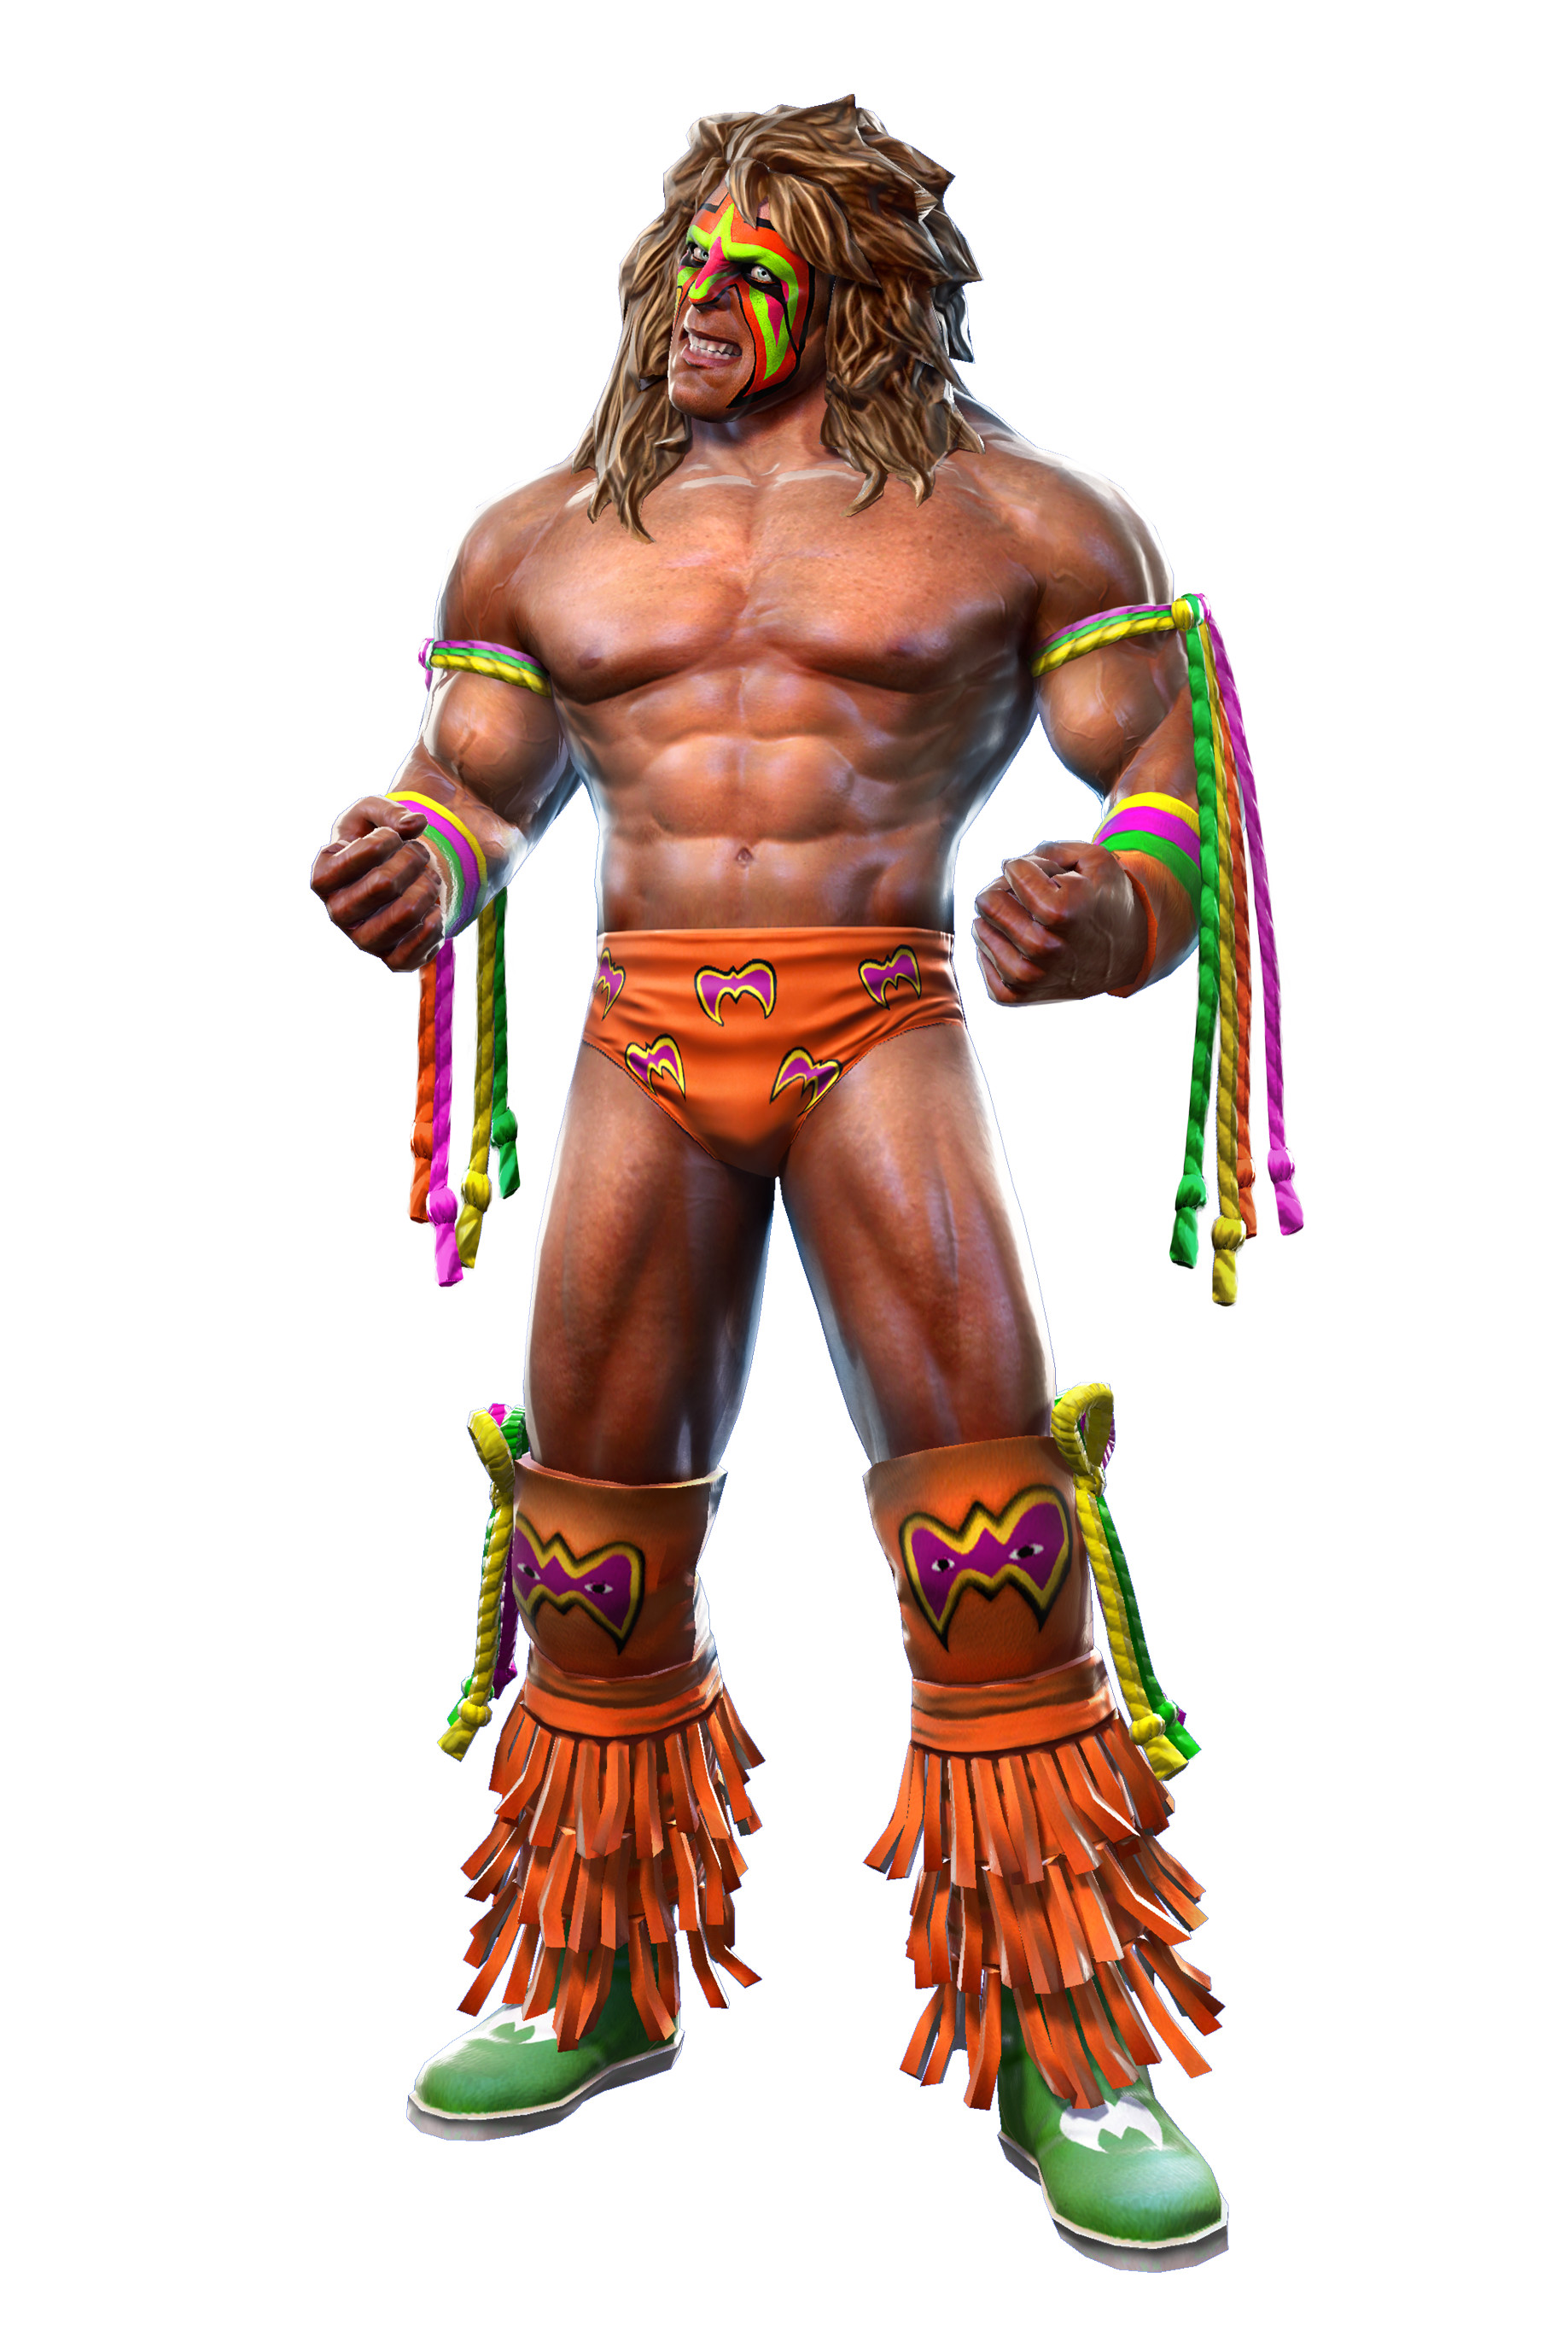 The Ultimate Warrior 1024×768 Widescreen Image | Special  Backgrounds, v.22